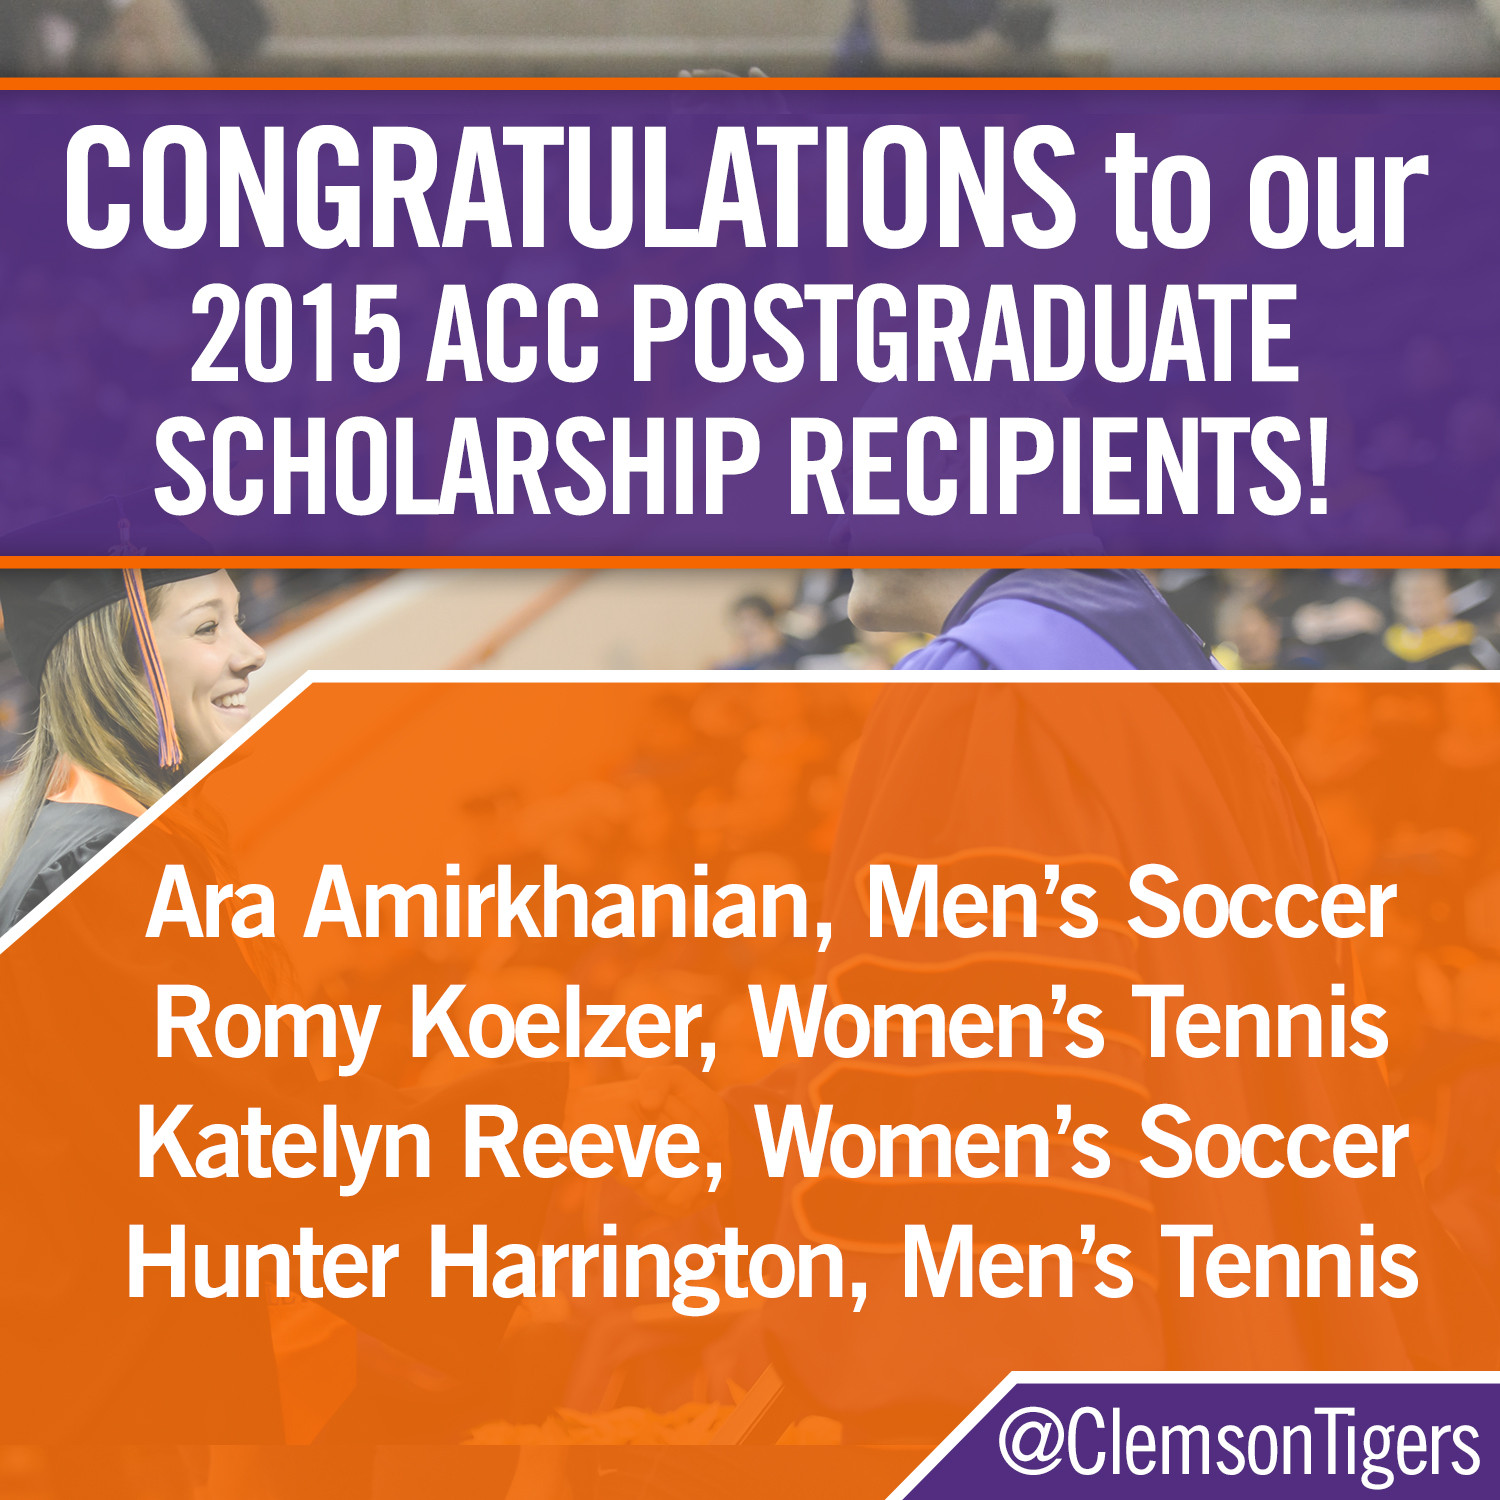 Four Clemson Student-Athletes Earn ACC Postgraduate Scholarship Awards